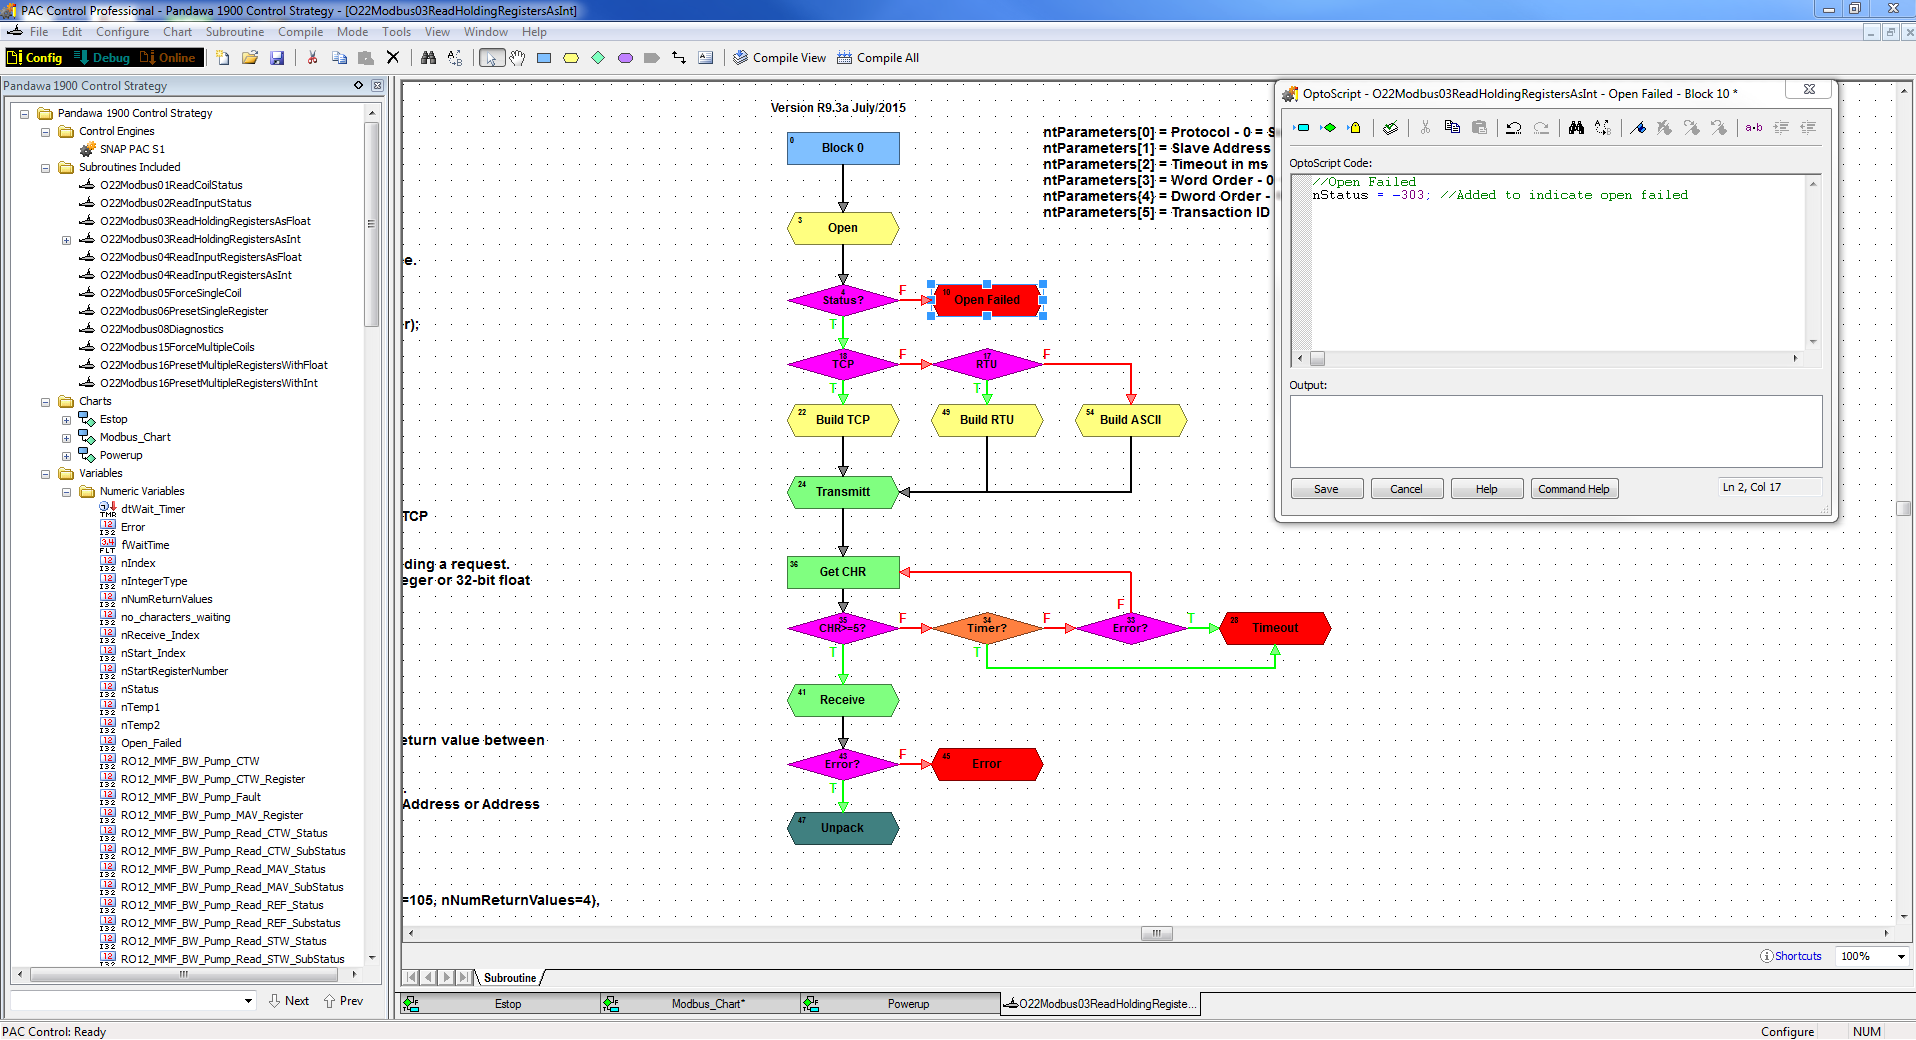 Modbus open communication timeout is too long - Applications